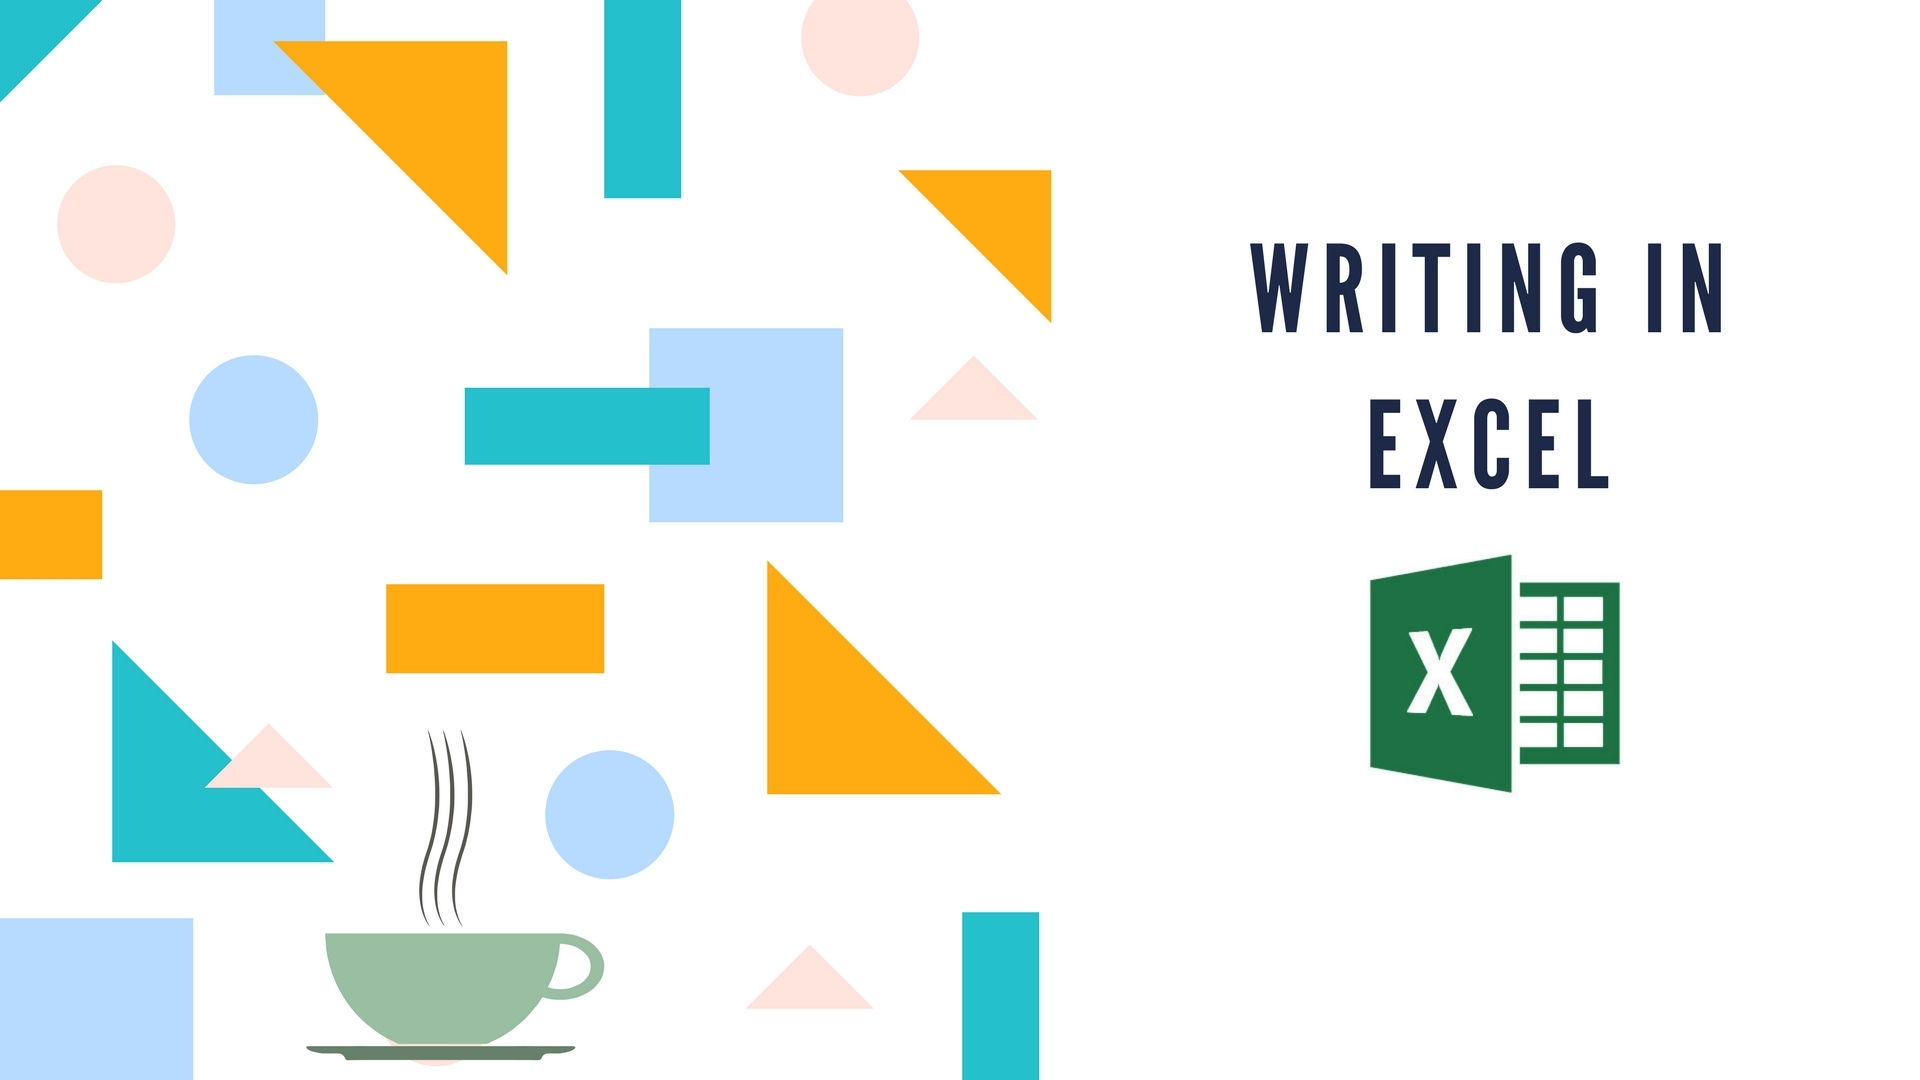 How to Write Data into Excel Sheet using Selenium Webdriver